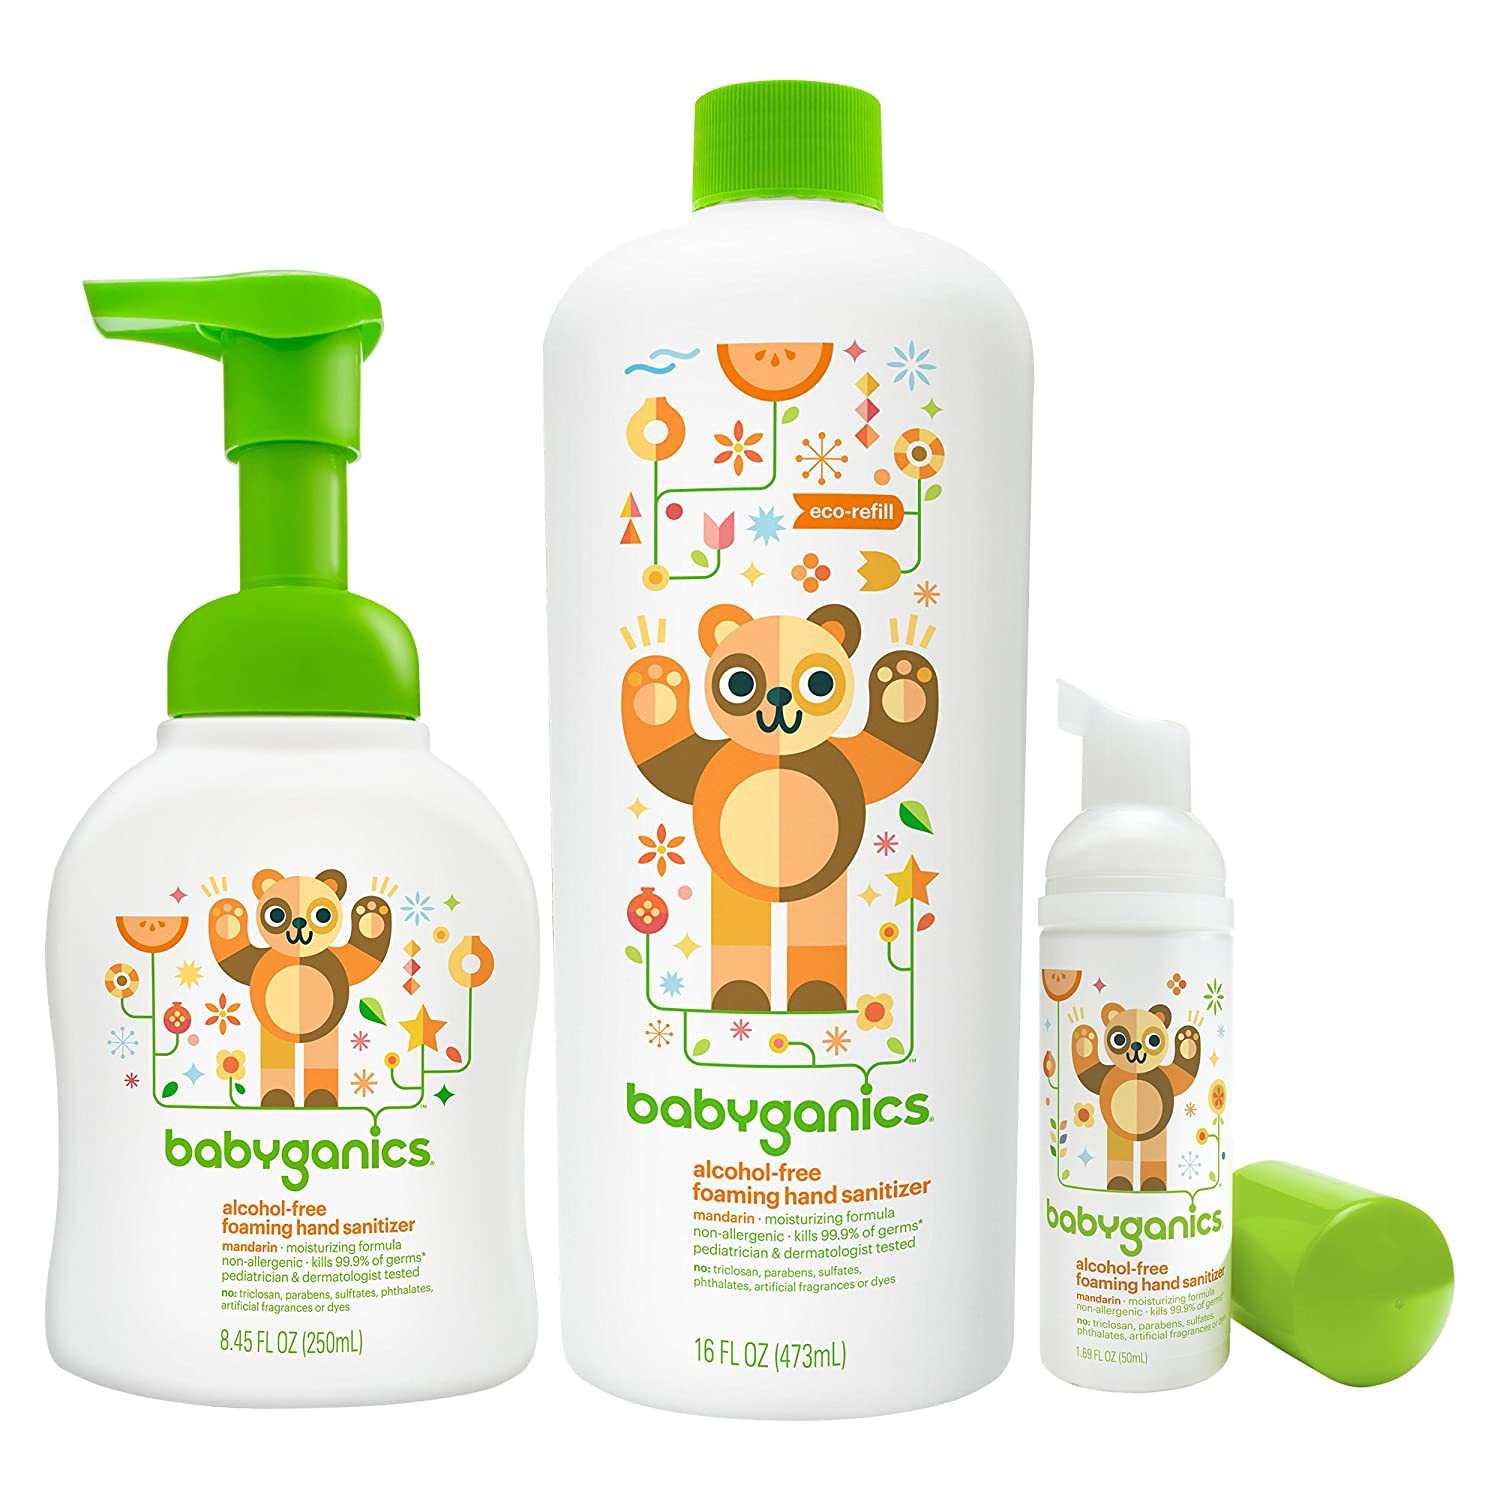 Buy Babyganics Foam Hand Sanitizer With Refill Bottle On The Go